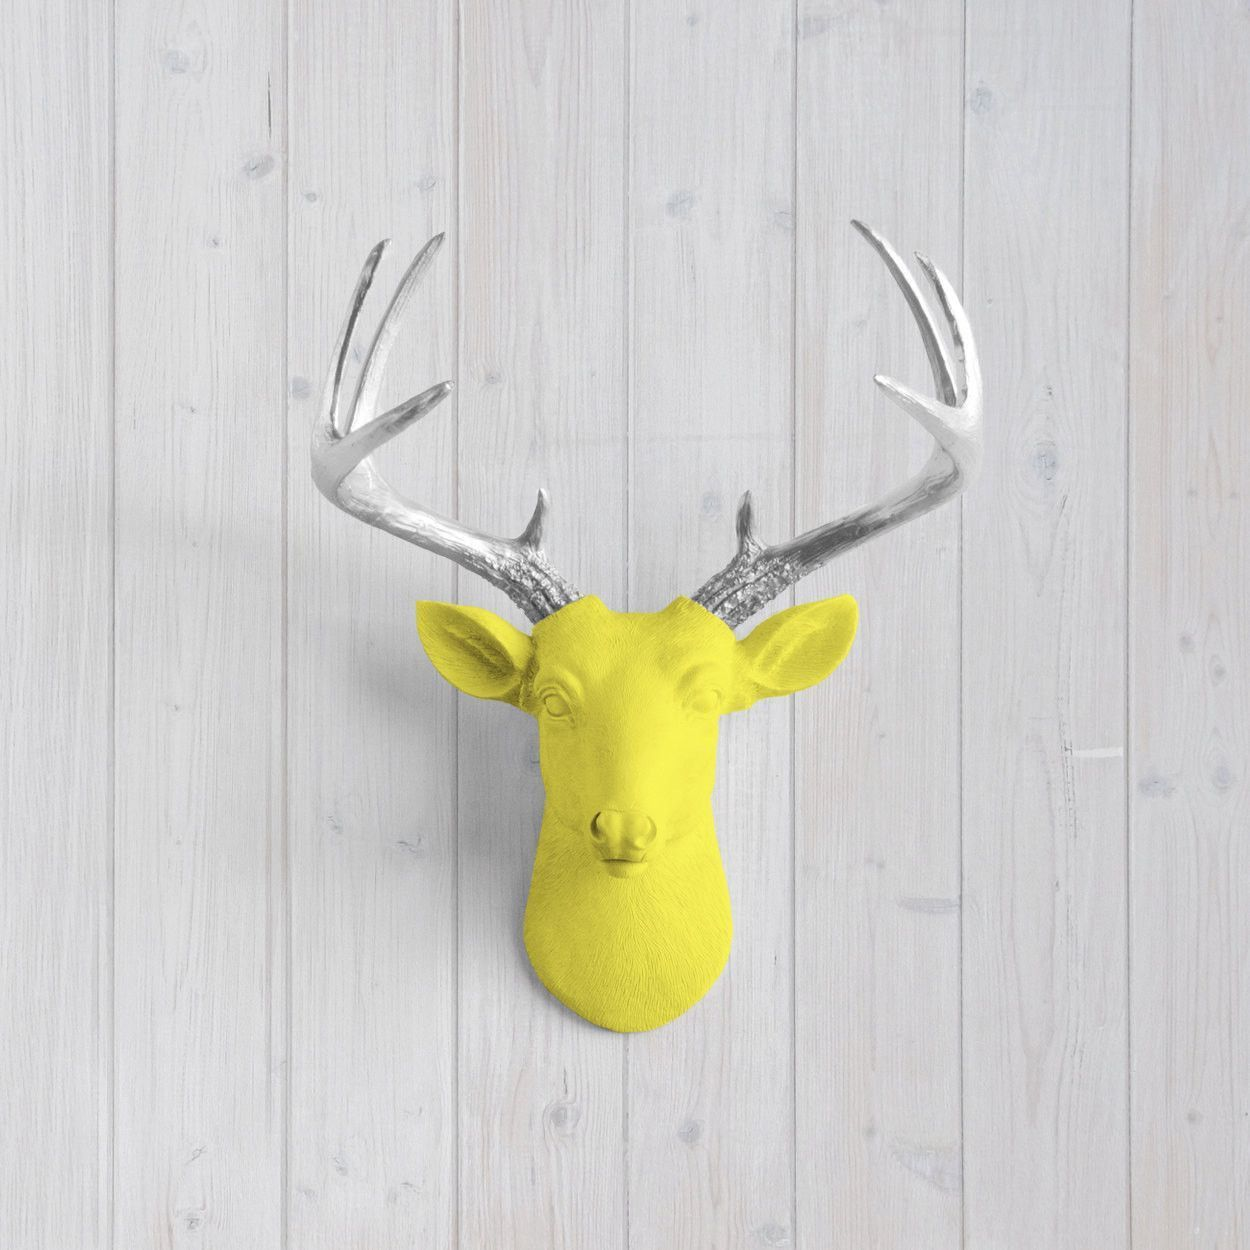 Magnificent Plastic Deer Head Wall Decor Contemporary - The Wall ...